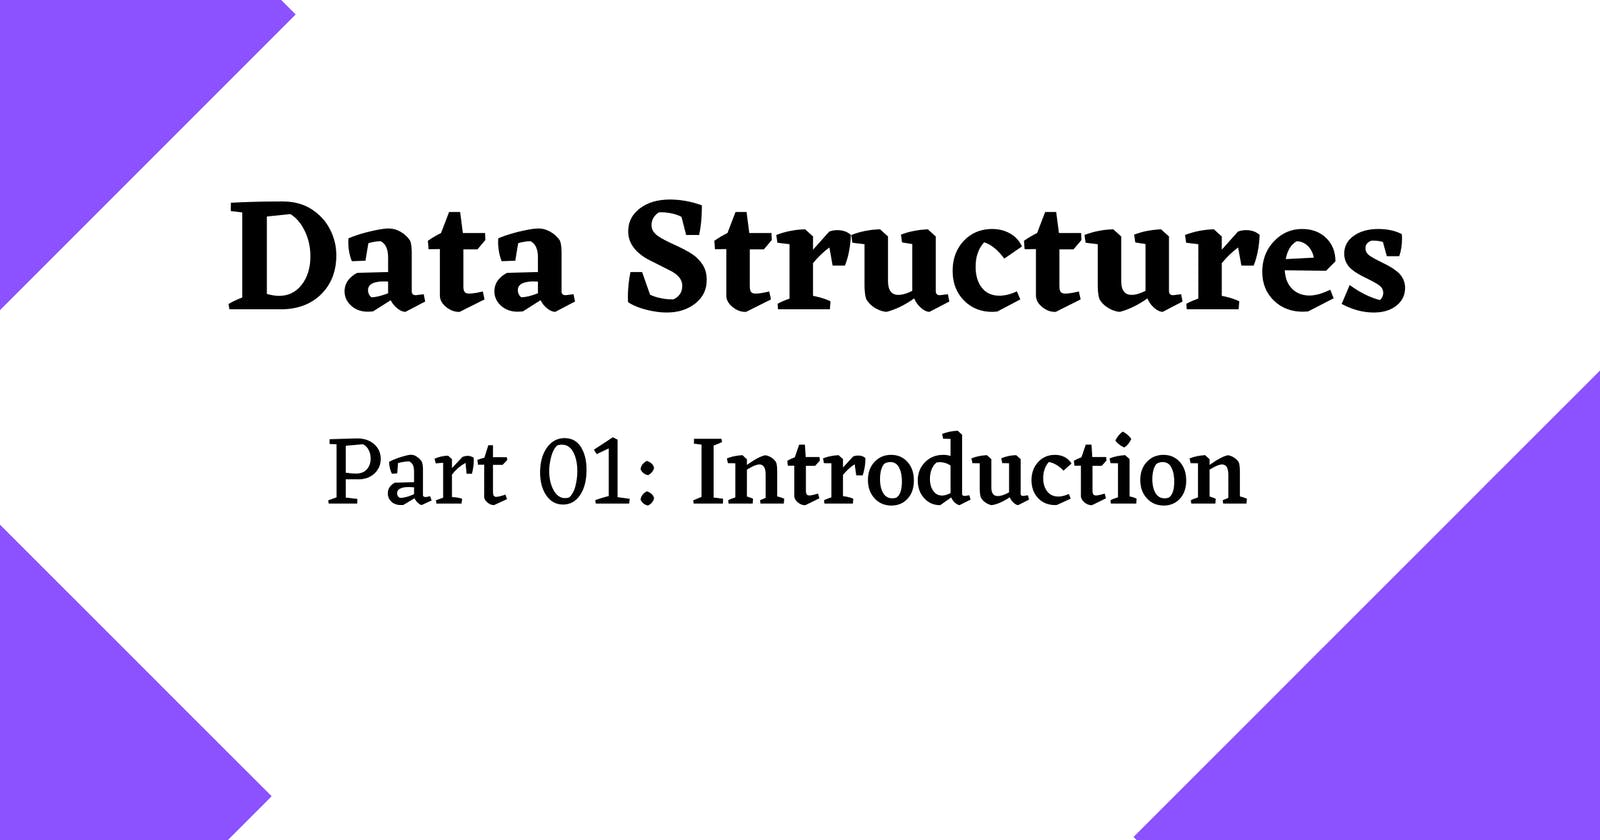 Data Structures 101 